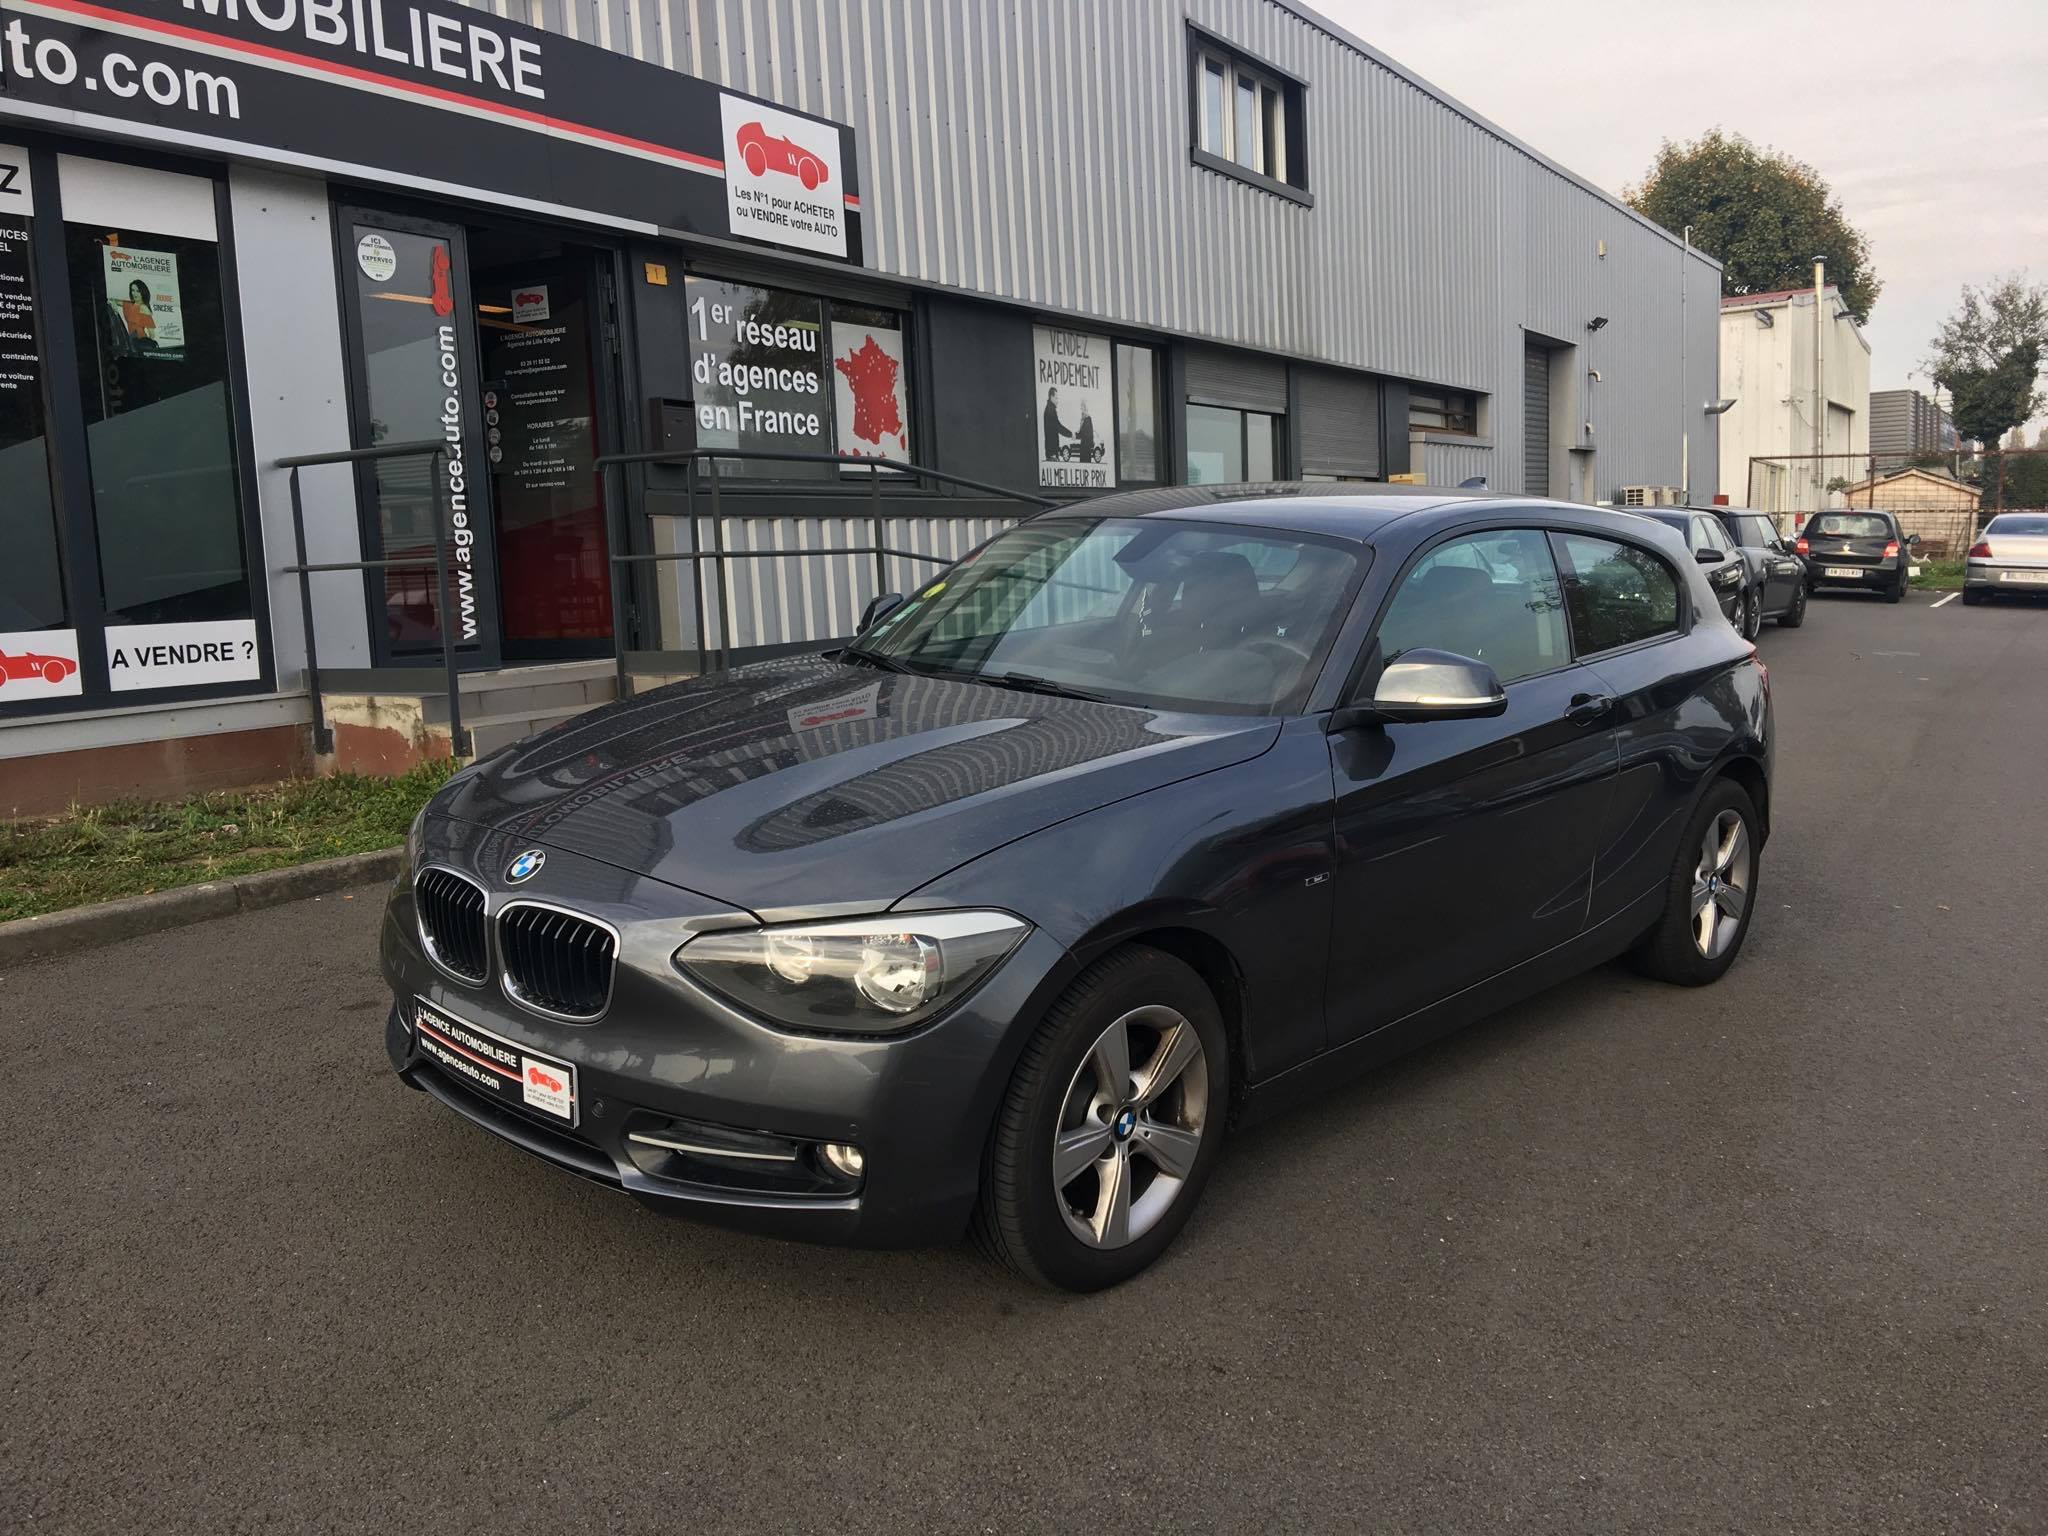 bmw serie 1 118d sport occasion lille englos pas cher voiture occasion nord 59160 agence auto. Black Bedroom Furniture Sets. Home Design Ideas